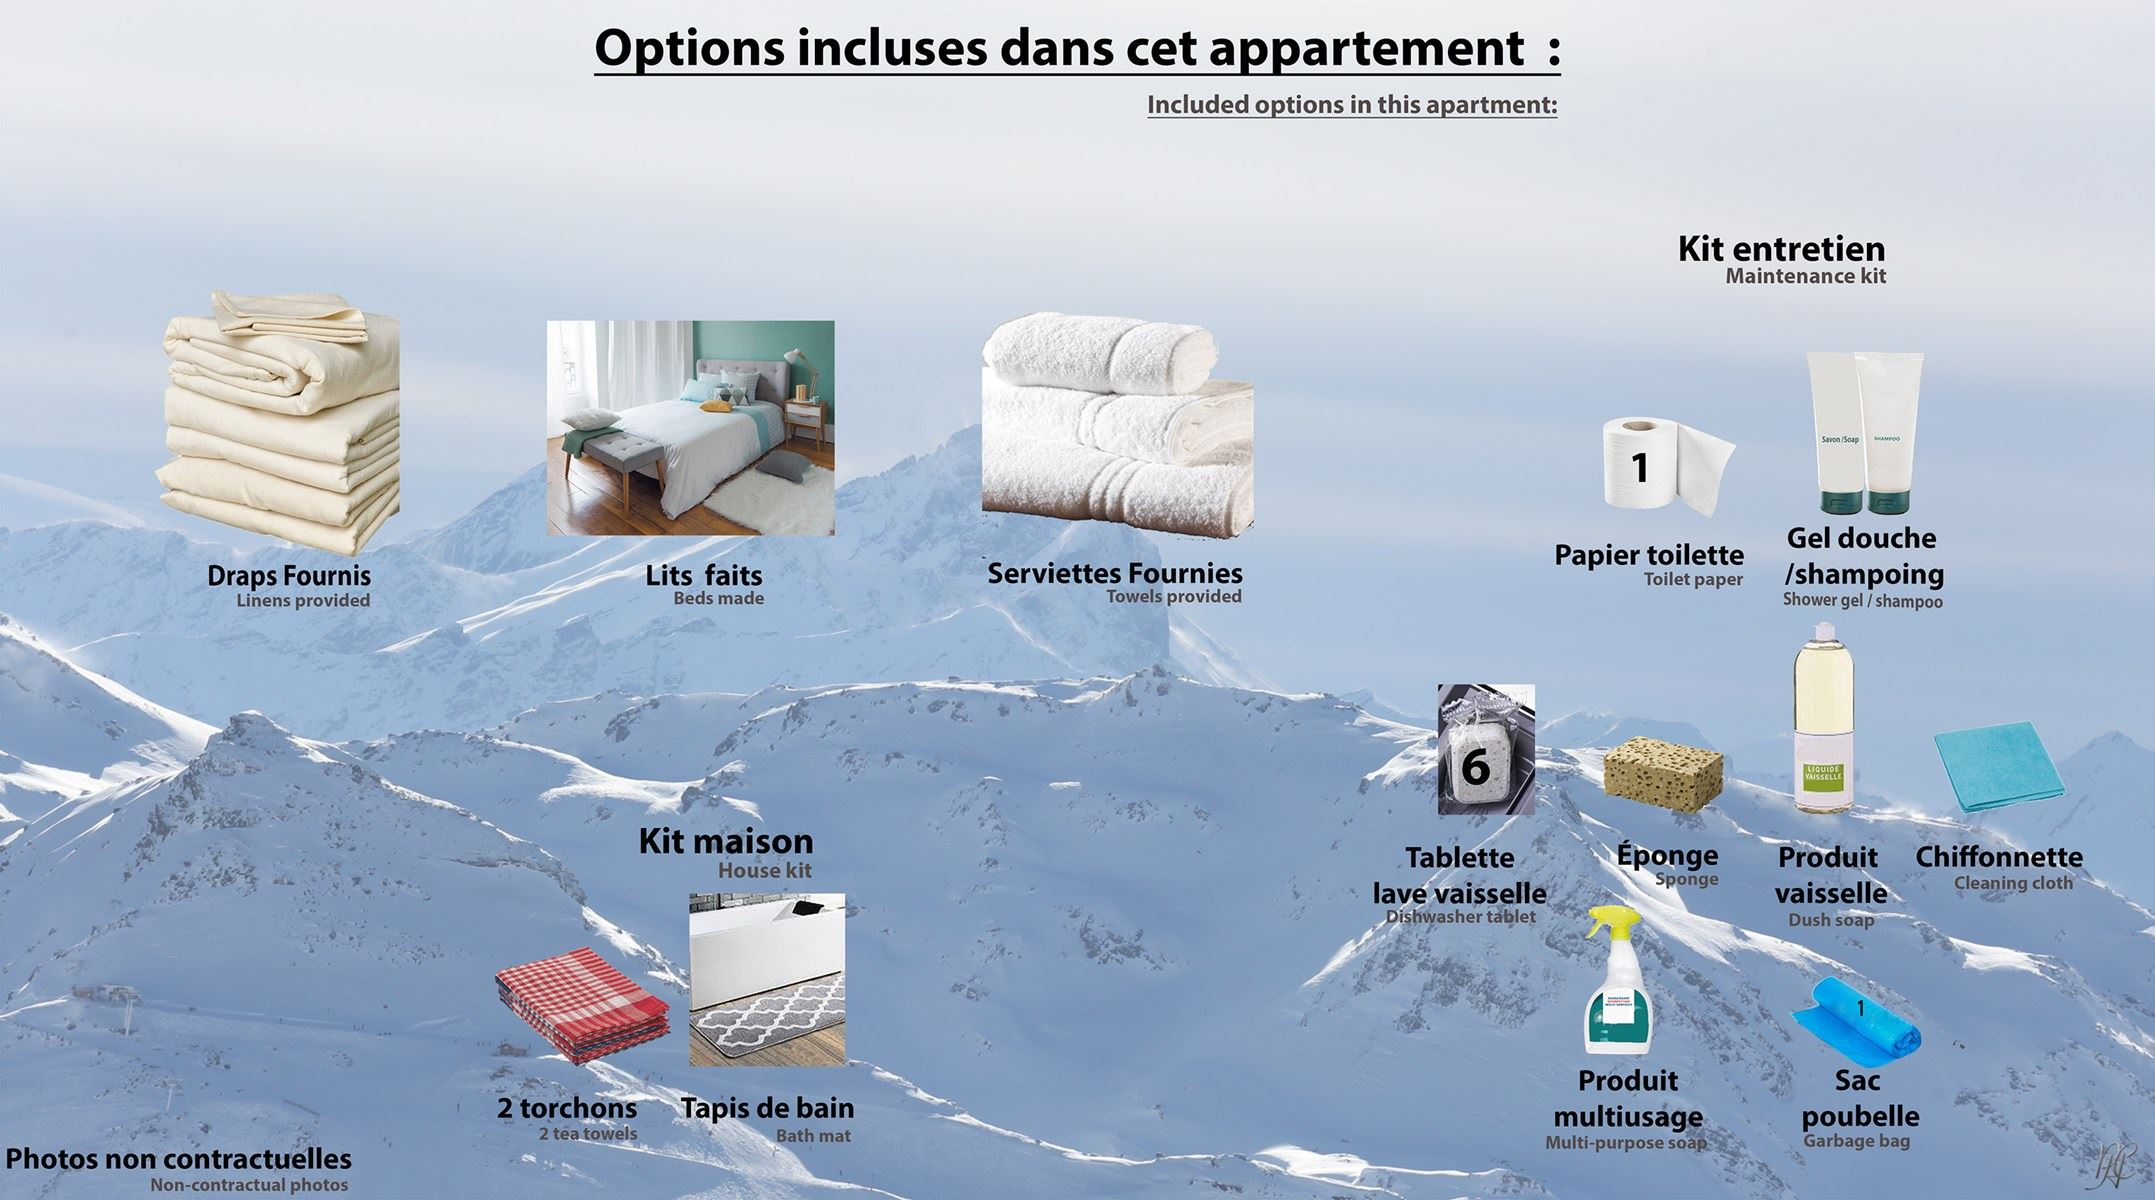 SILVERALP 459 / APPARTEMENT DUPLEX 4 PIECES 6 PERSONNES - 4 FLOCONS OR - ADA